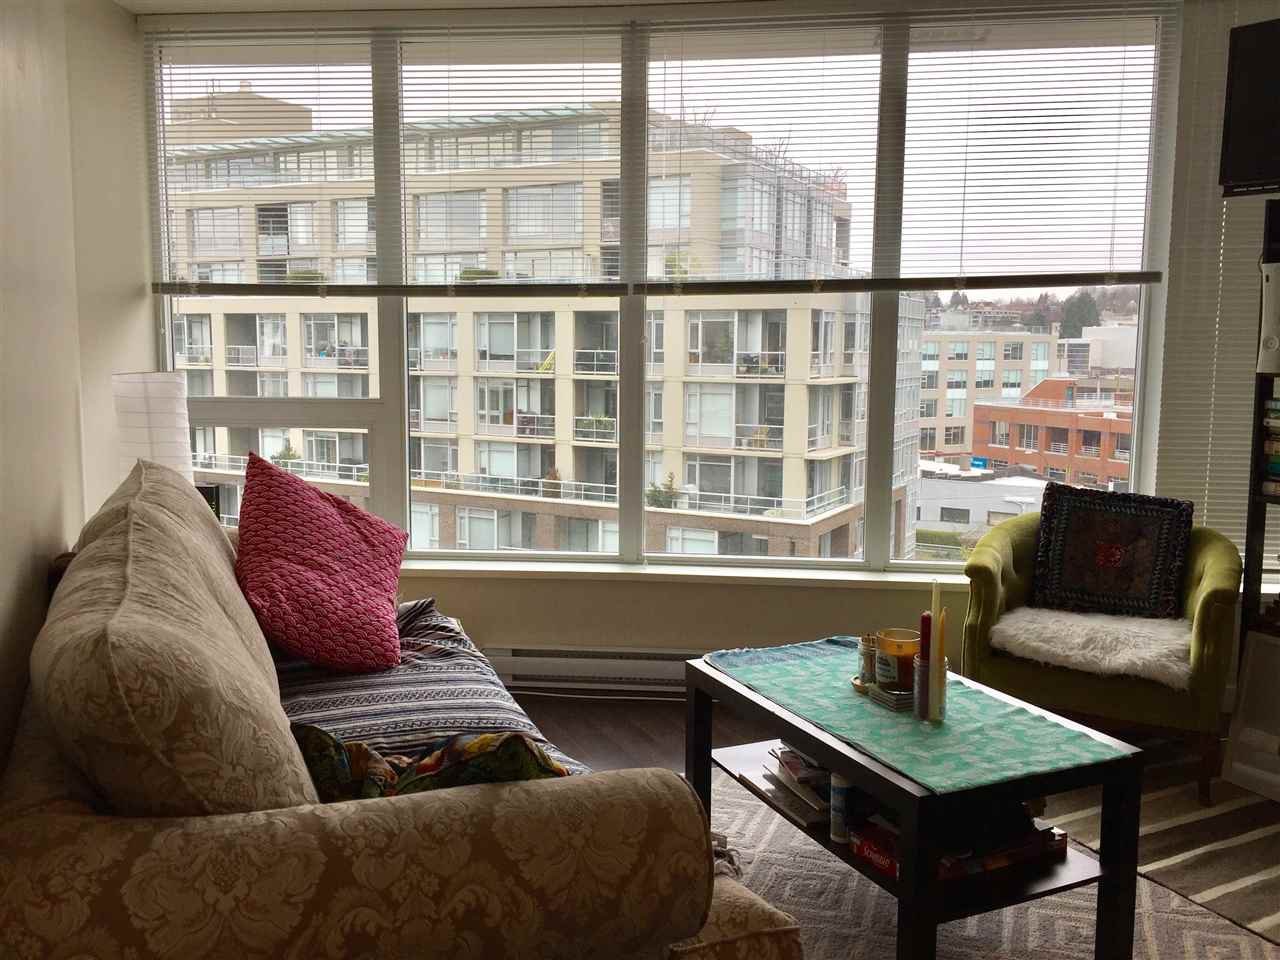 "Photo 6: Photos: 710 445 W 2ND Avenue in Vancouver: False Creek Condo for sale in ""Maynards Block"" (Vancouver West)  : MLS®# R2144737"